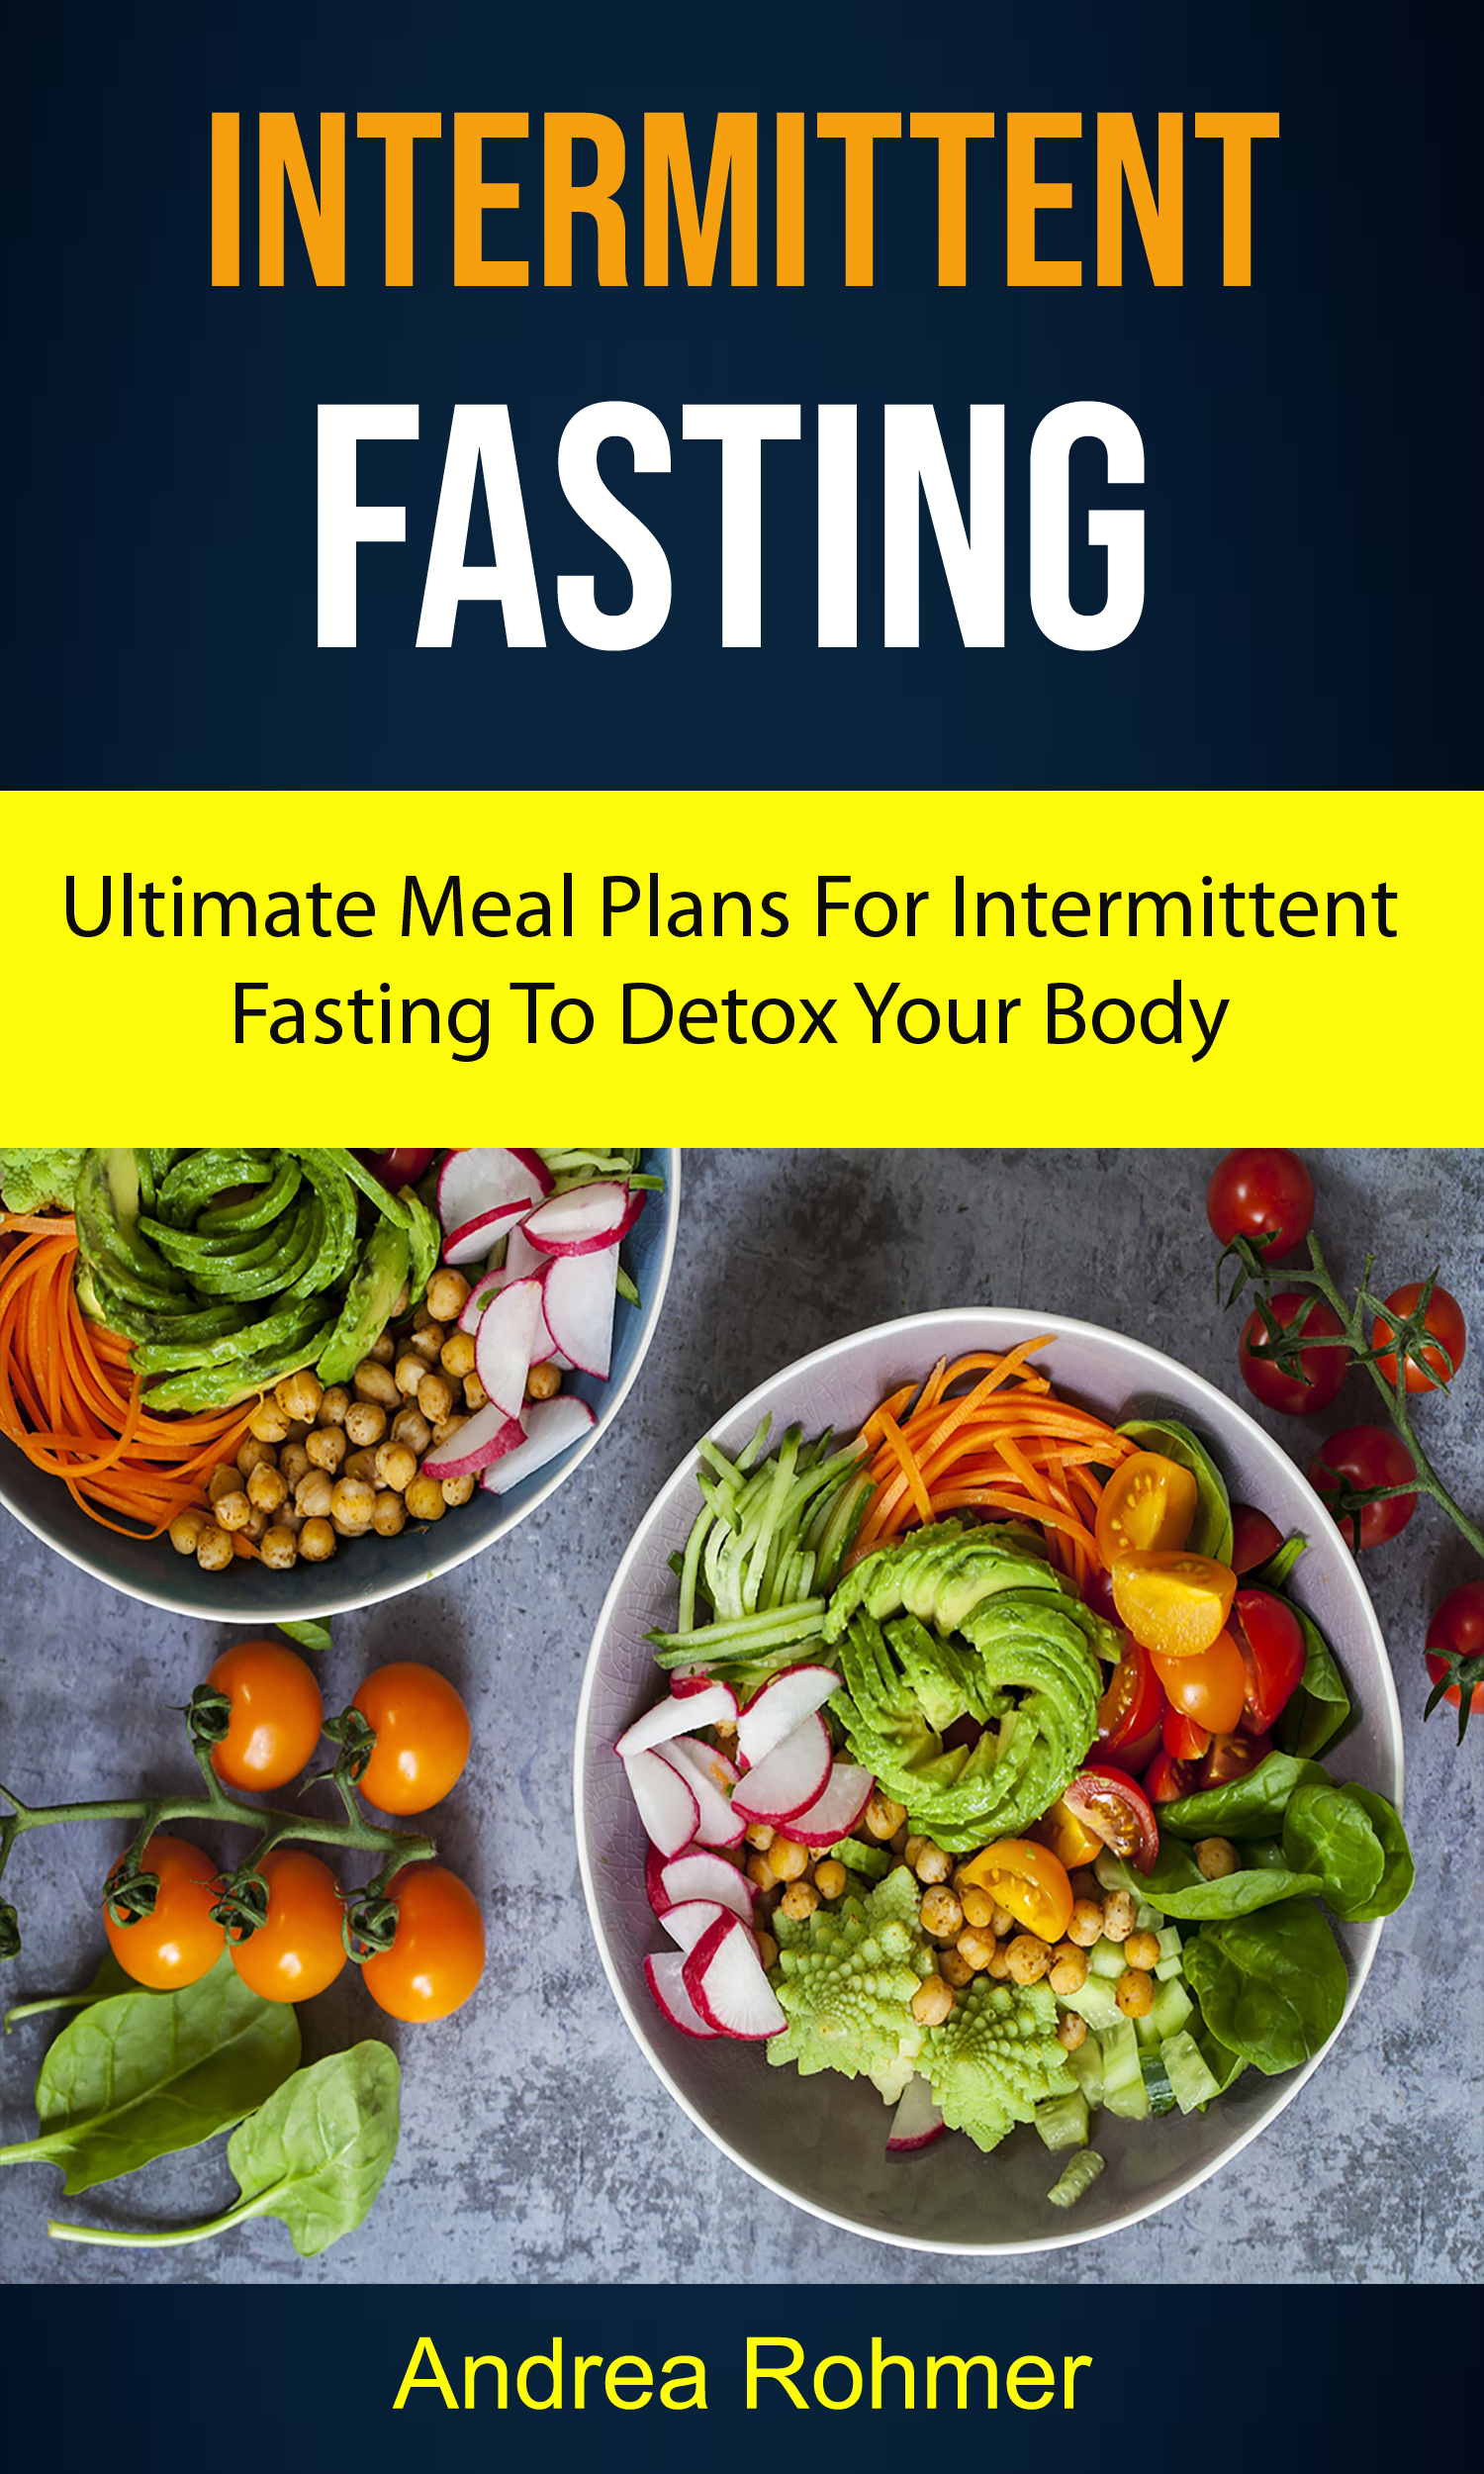 Intermittent fasting: ultimate meal plans for intermittent fasting to detox your body